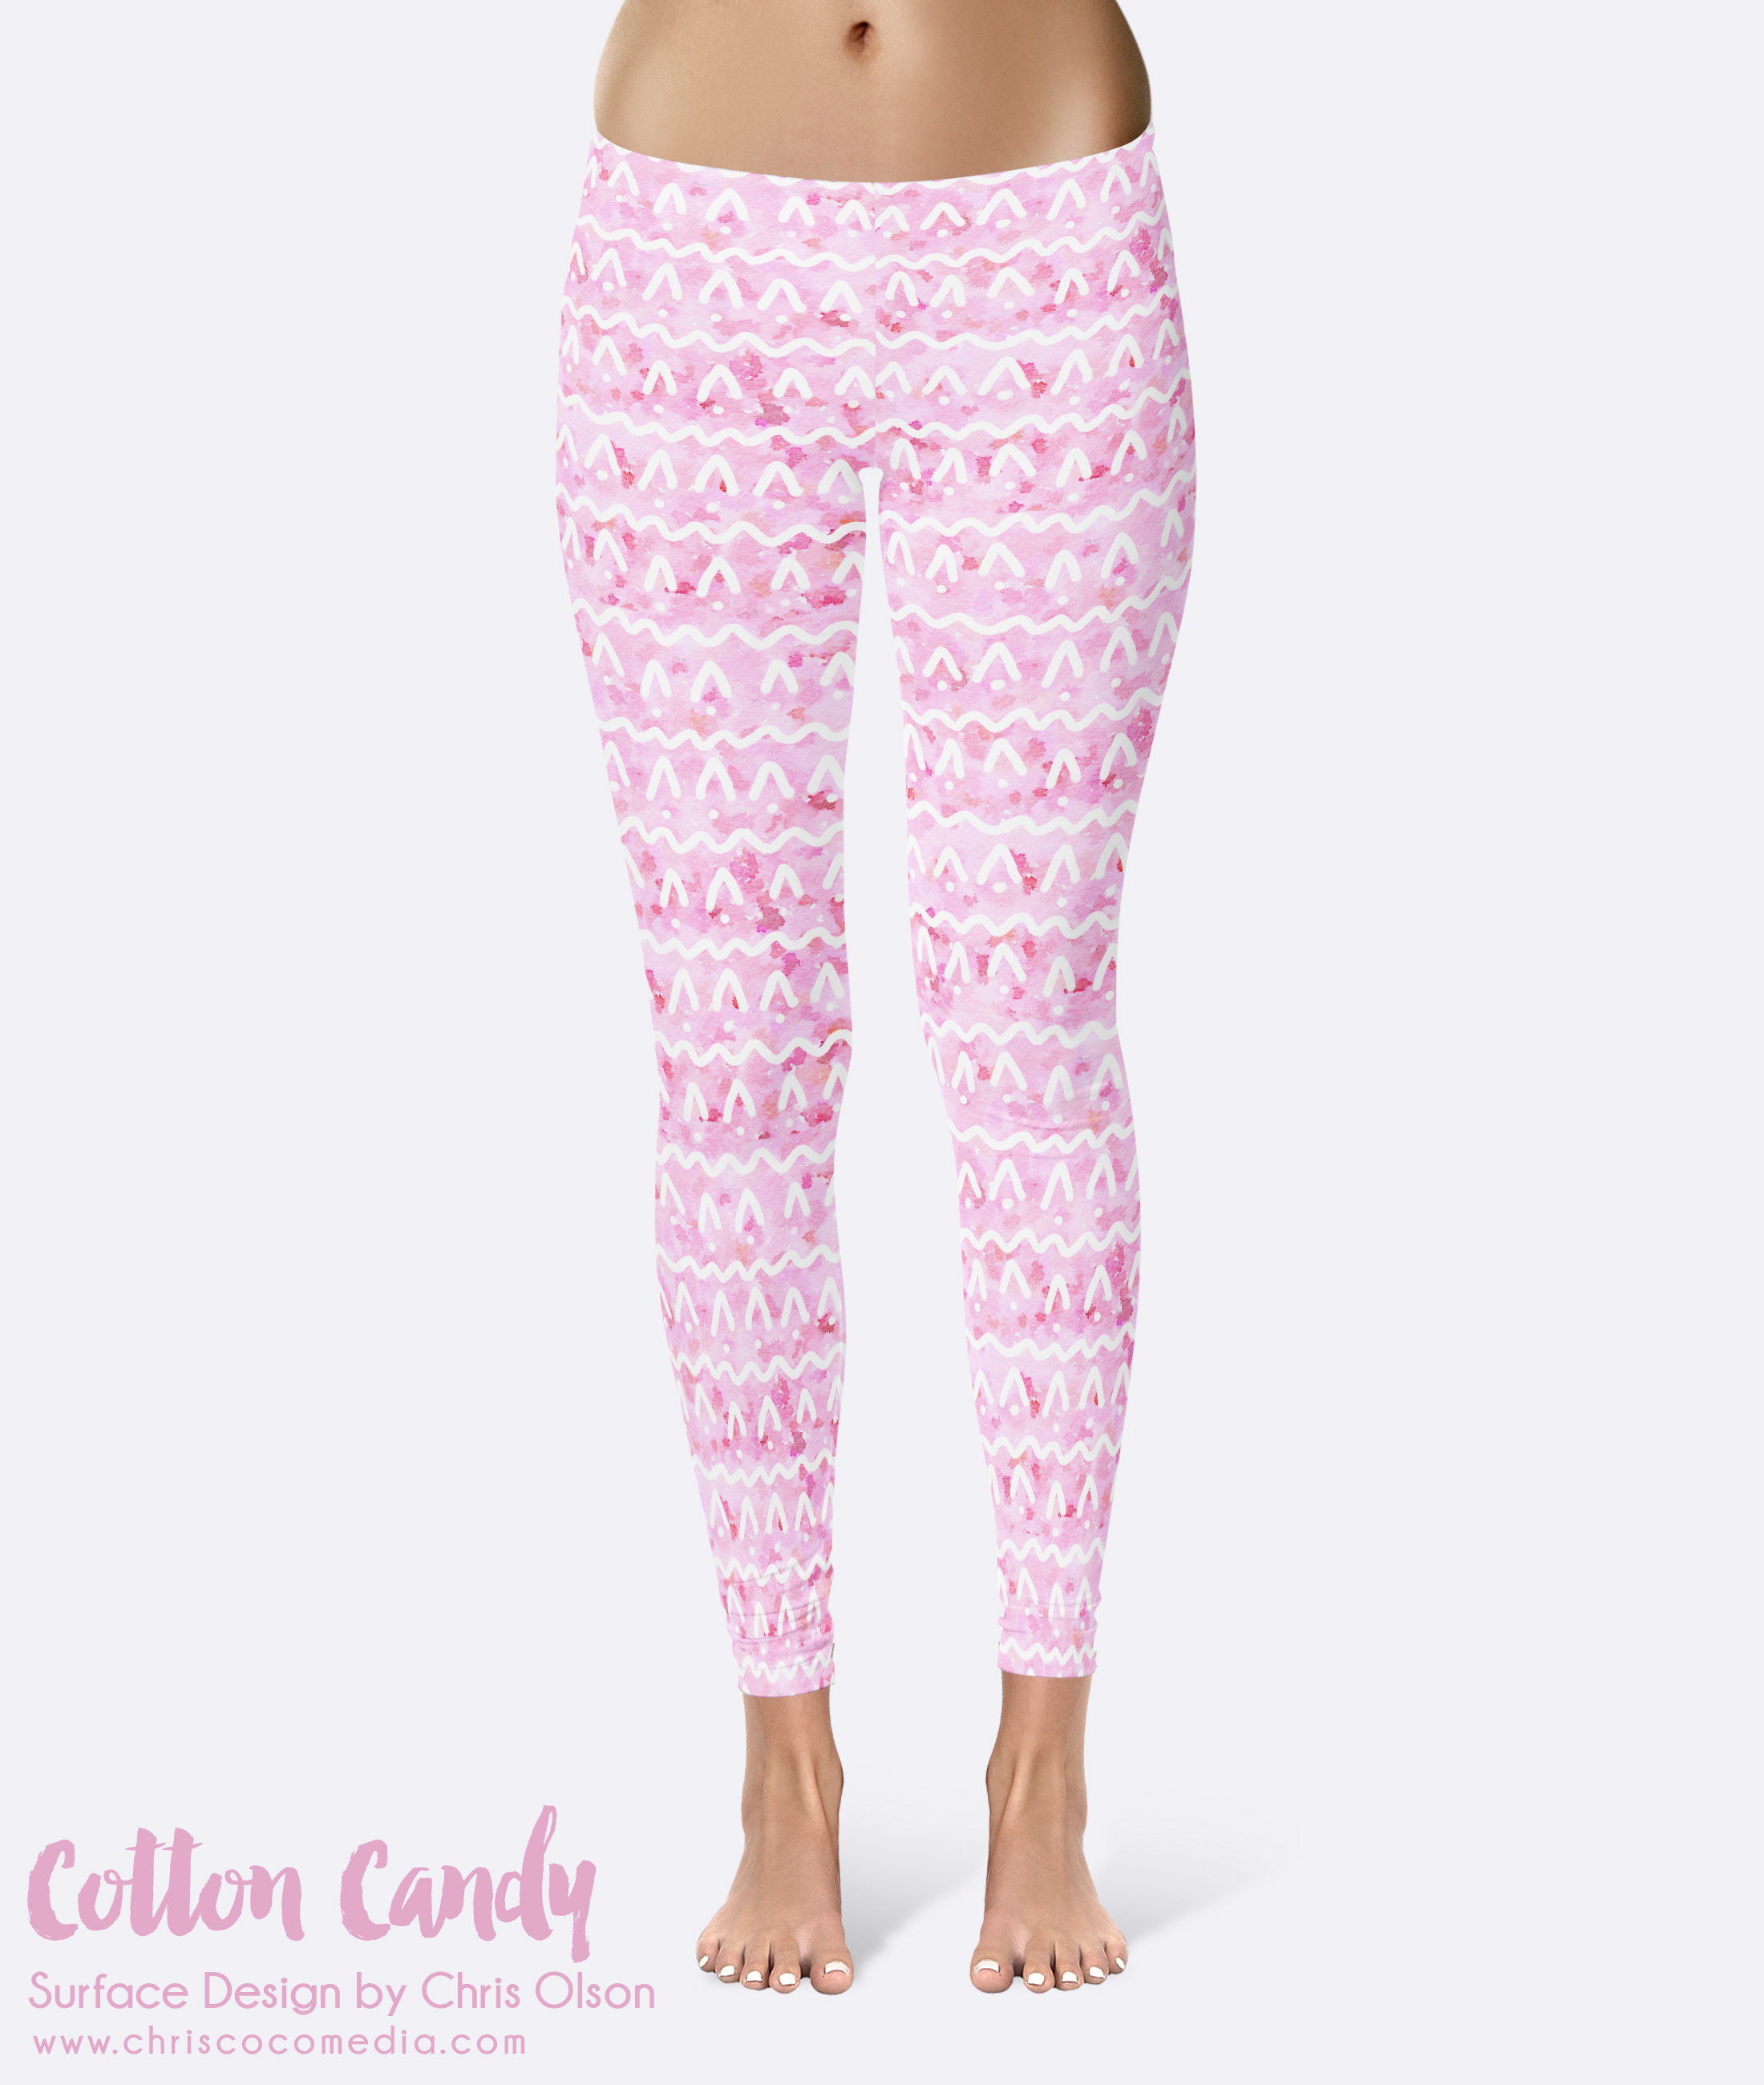 Cotton Candy textile pattern on leggings by designer Chris Olson // chriscocomedia.com